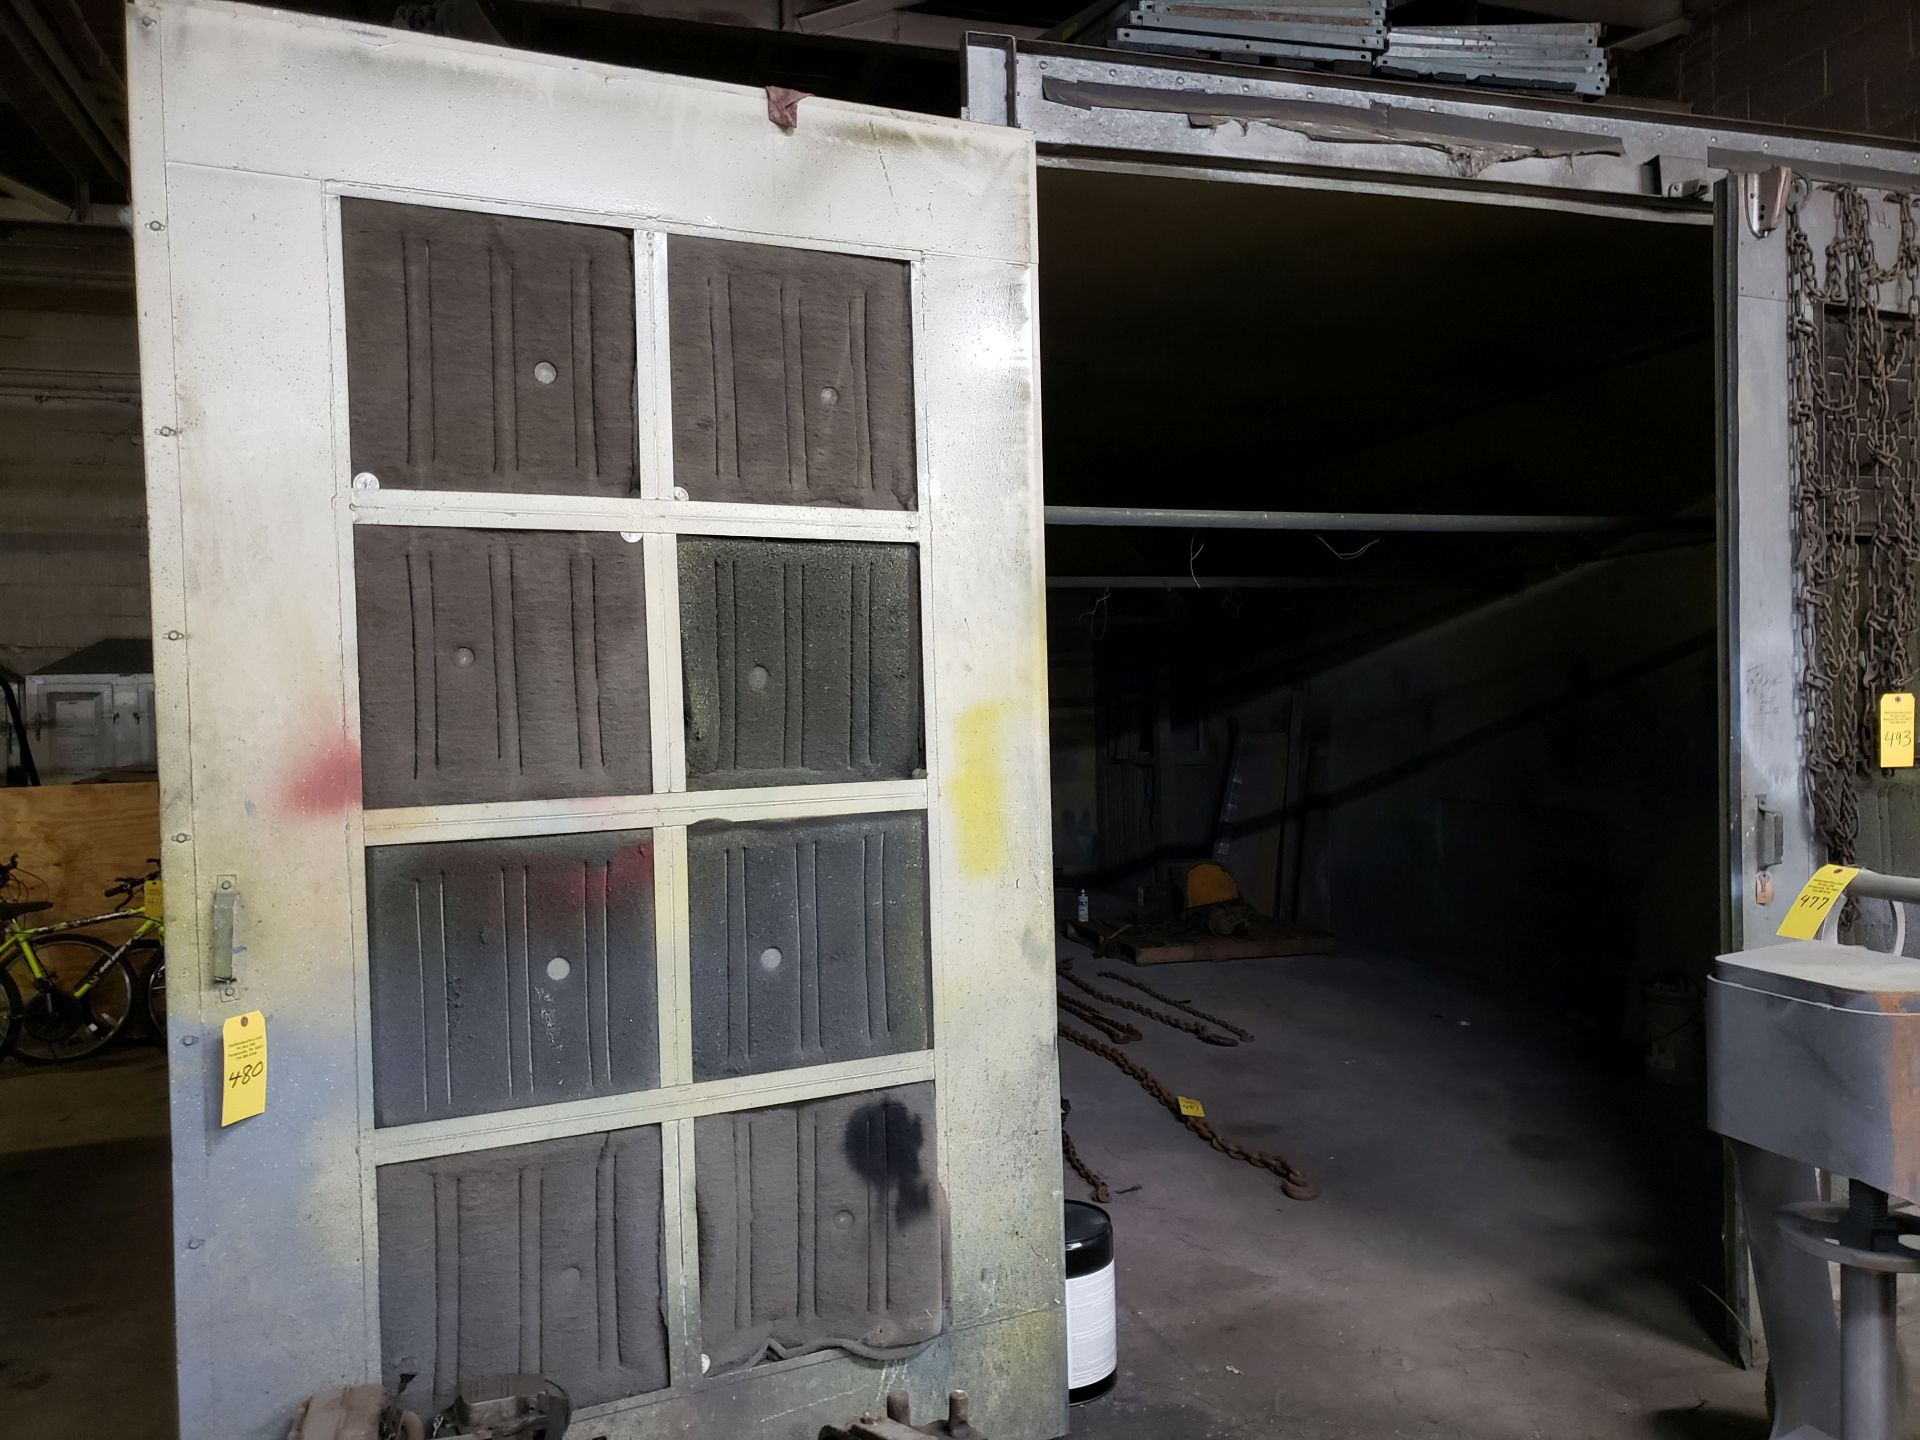 Lot 480 - BINKS PAINT BOOTH 26'x14', double door and man door entry, side and top lights, filter system